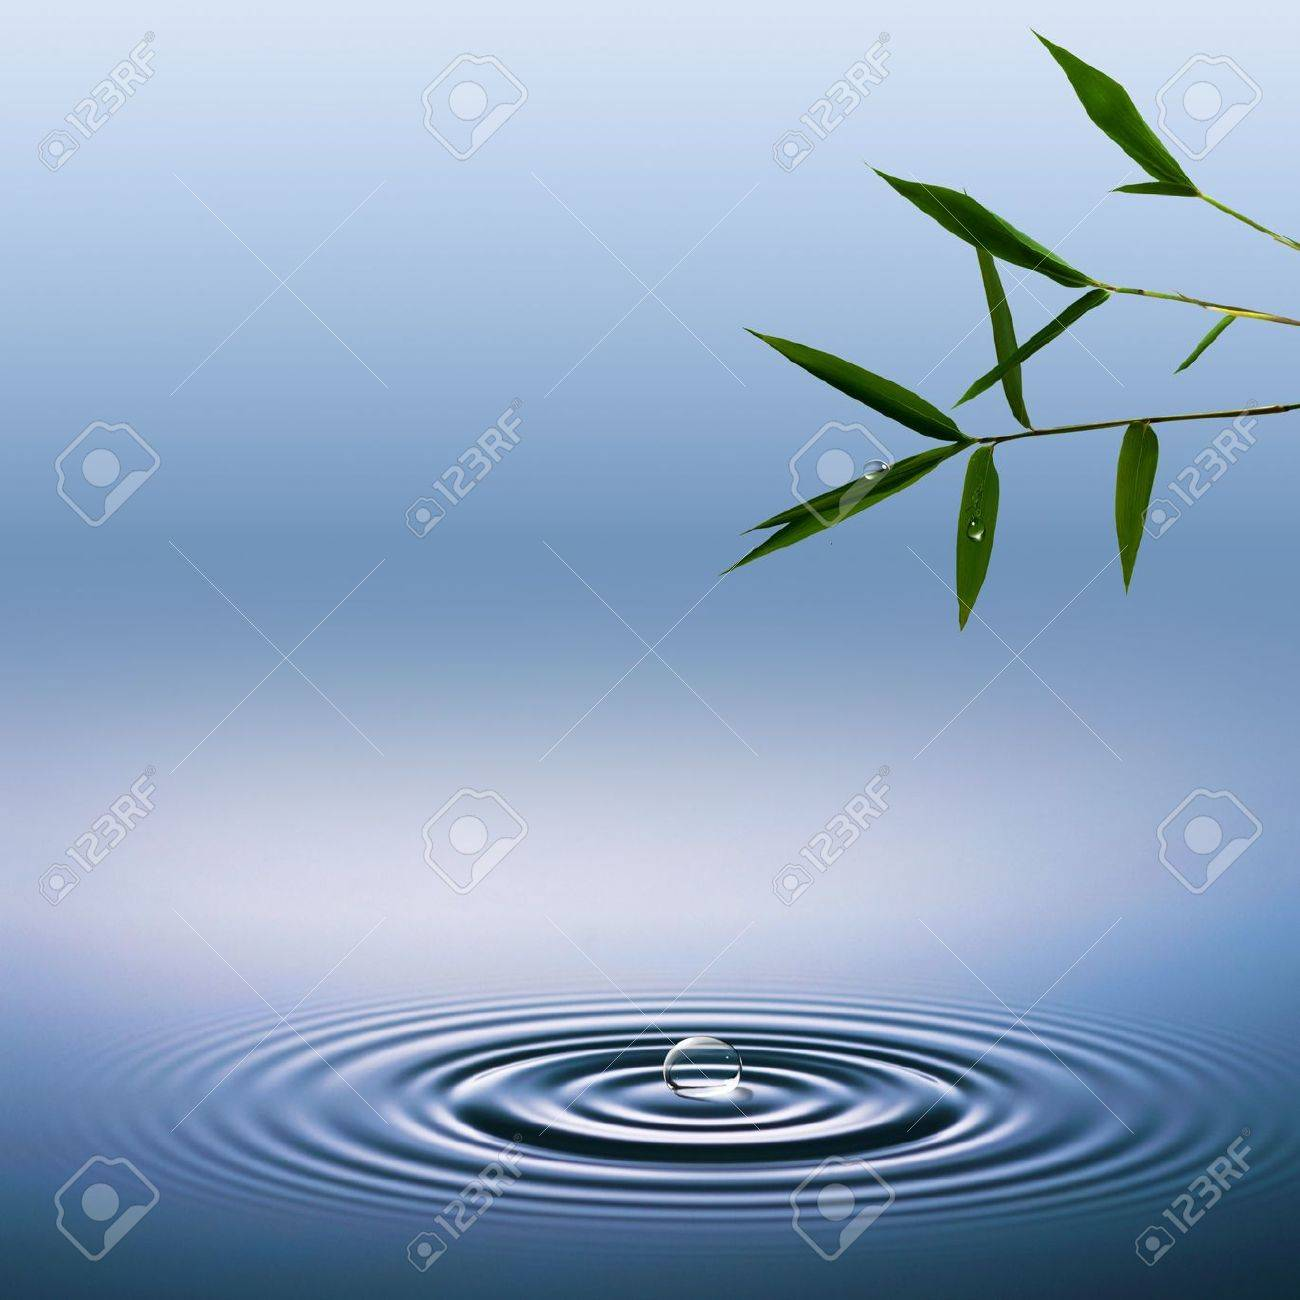 abstract environmental backgrounds with bamboo and water droplets stock photo 19137826